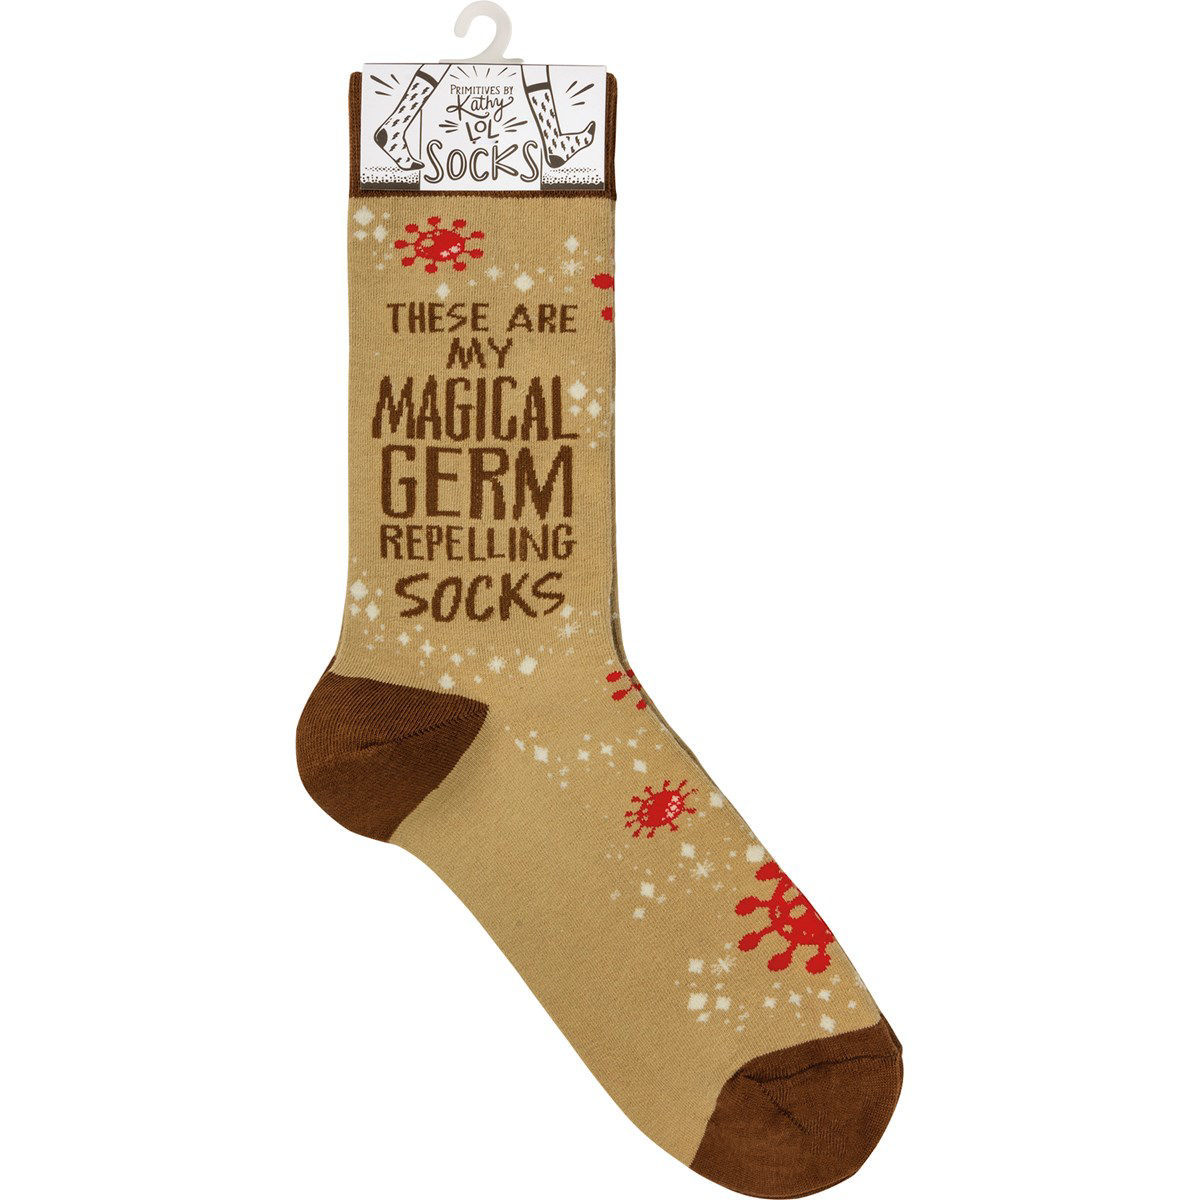 My Magical Germ Repelling Socks by Primitives by Kathy